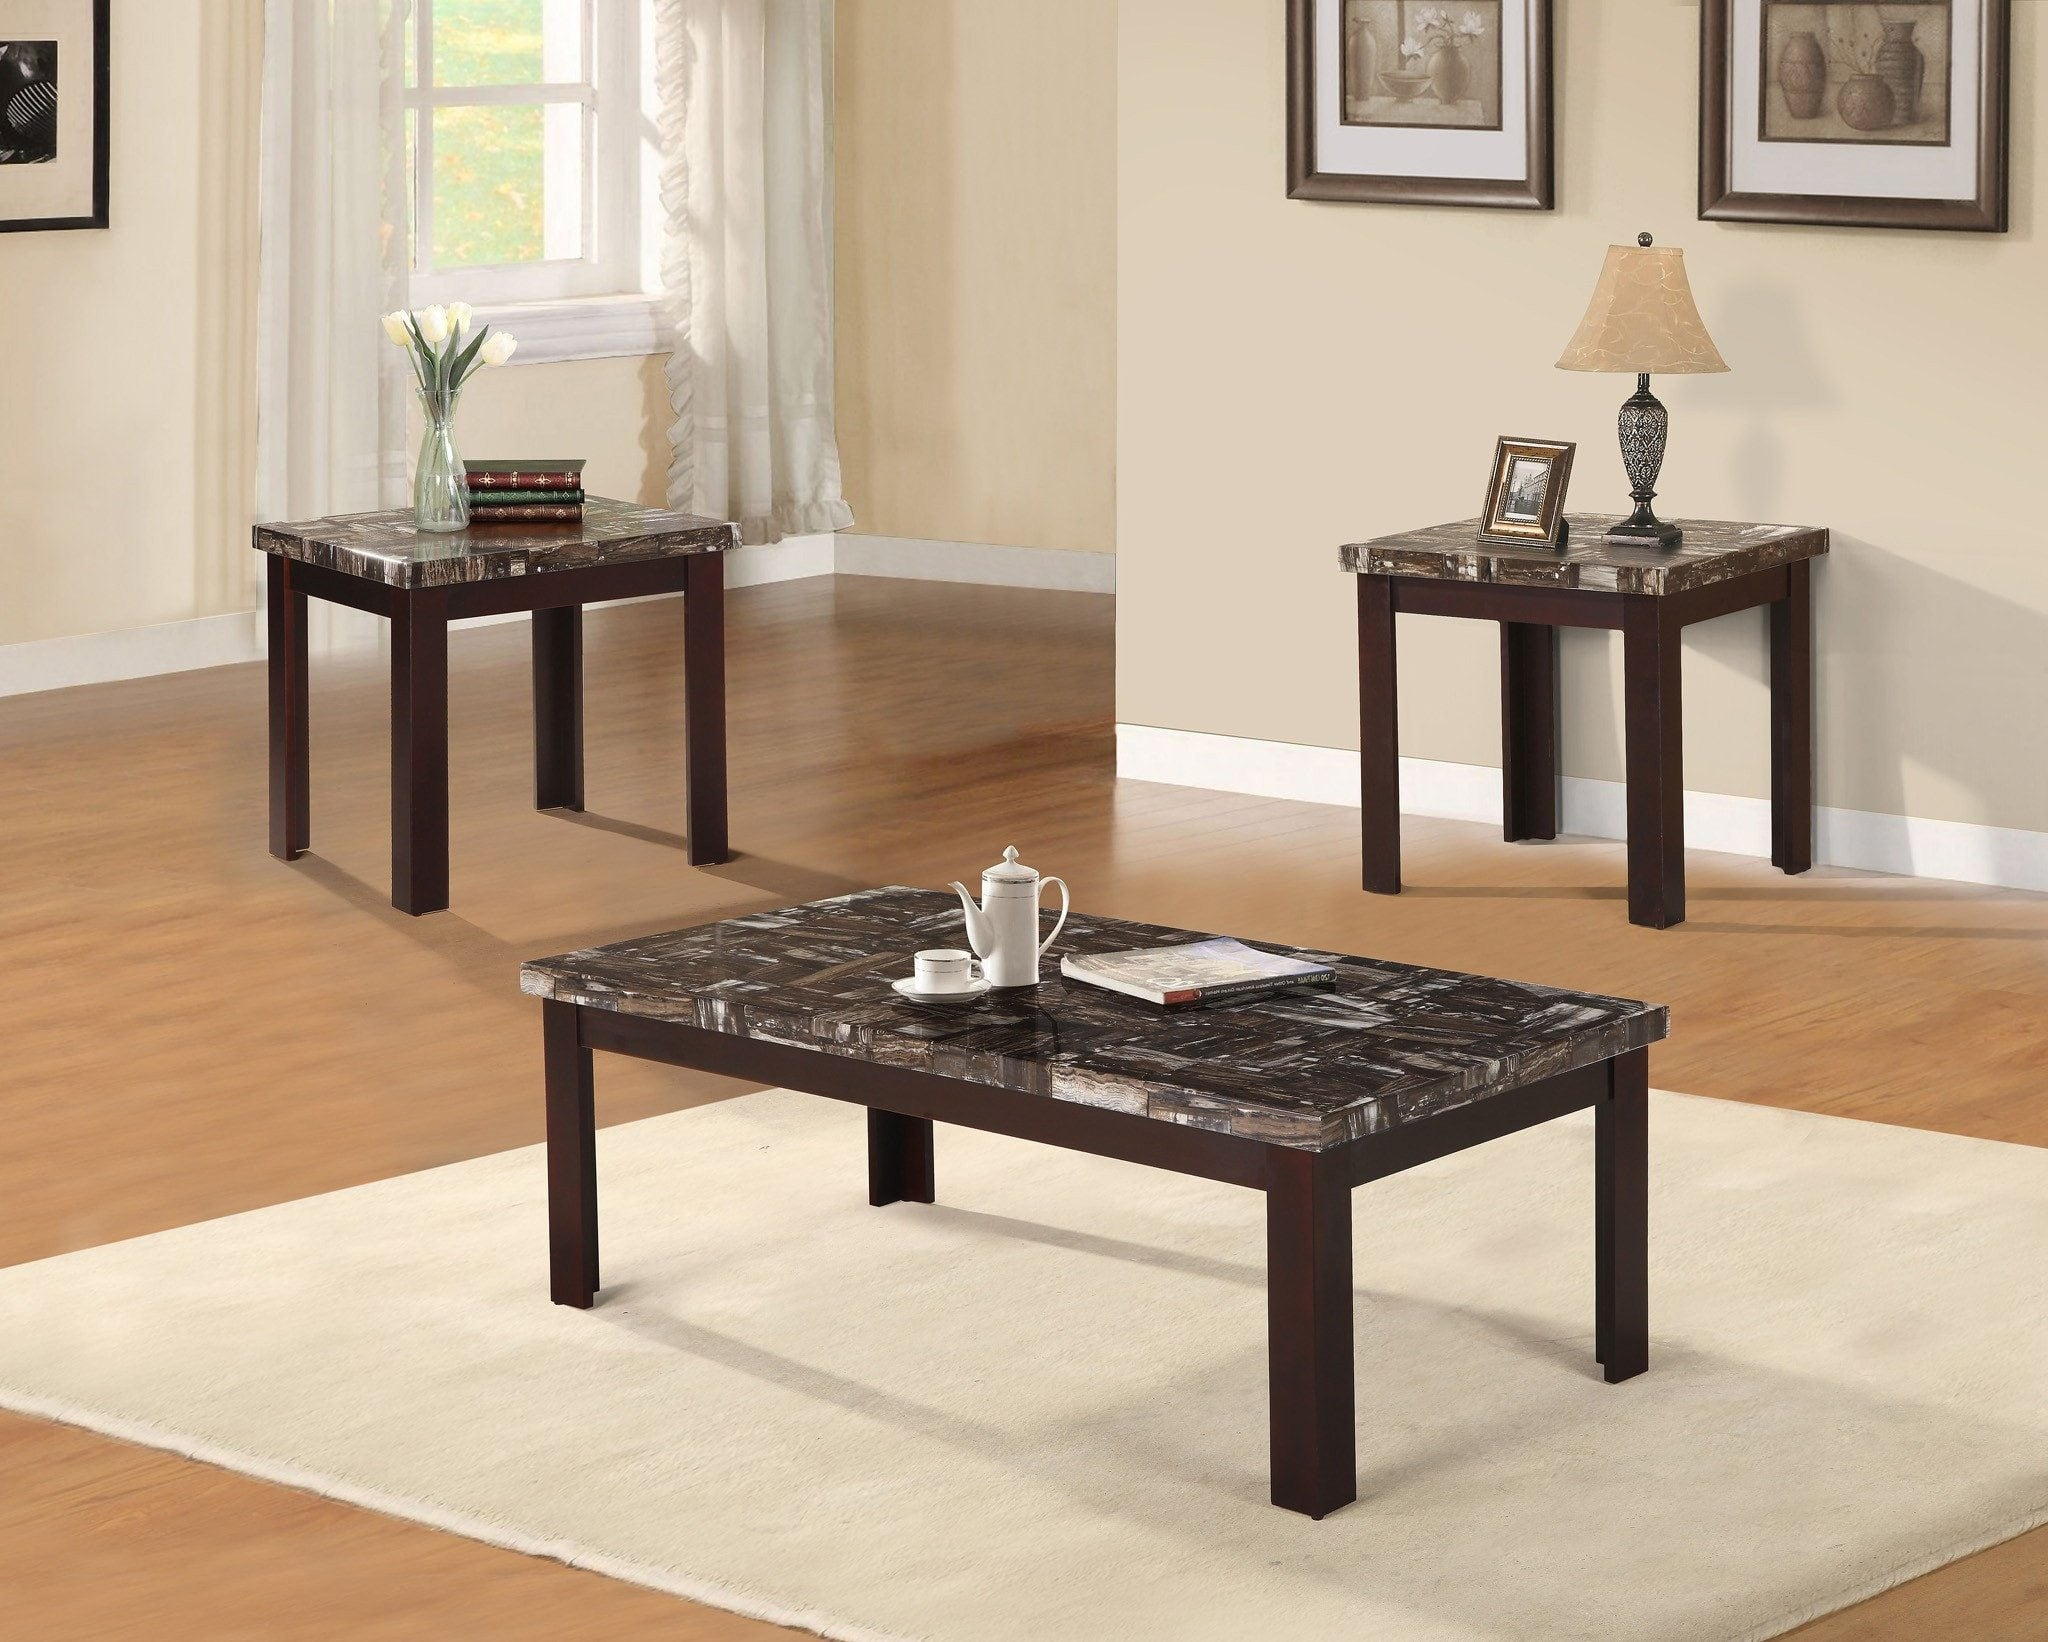 Larimar Espresso Coffee Table Set 3 PCS. SET (1C + 2E)   Furnlander